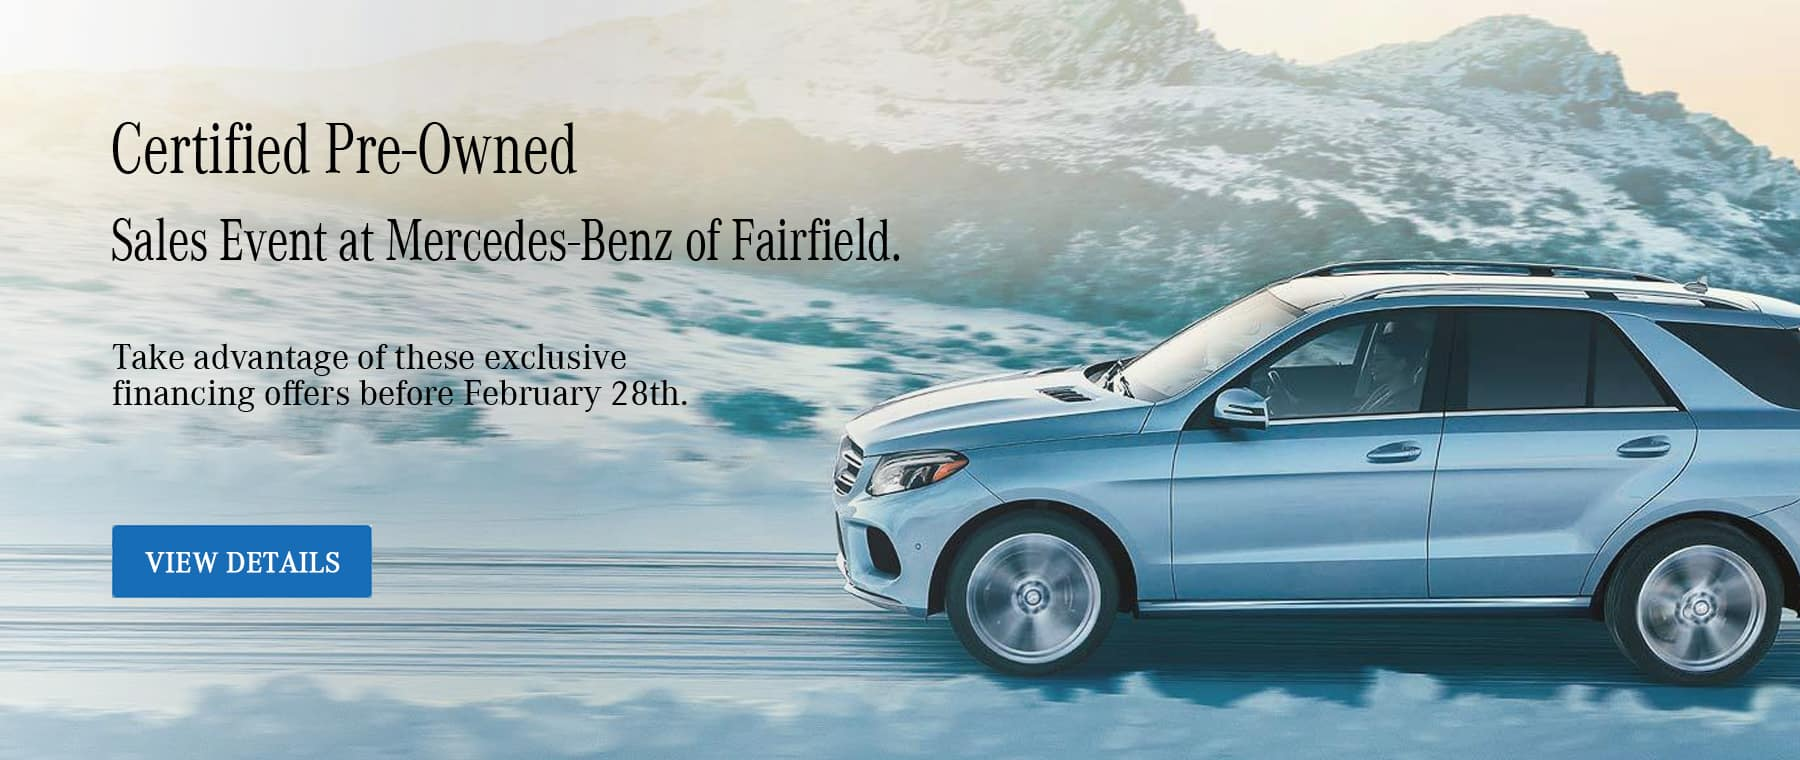 Certified Pre-Owned Sales Event at Mercedes-Benz of Fairfield